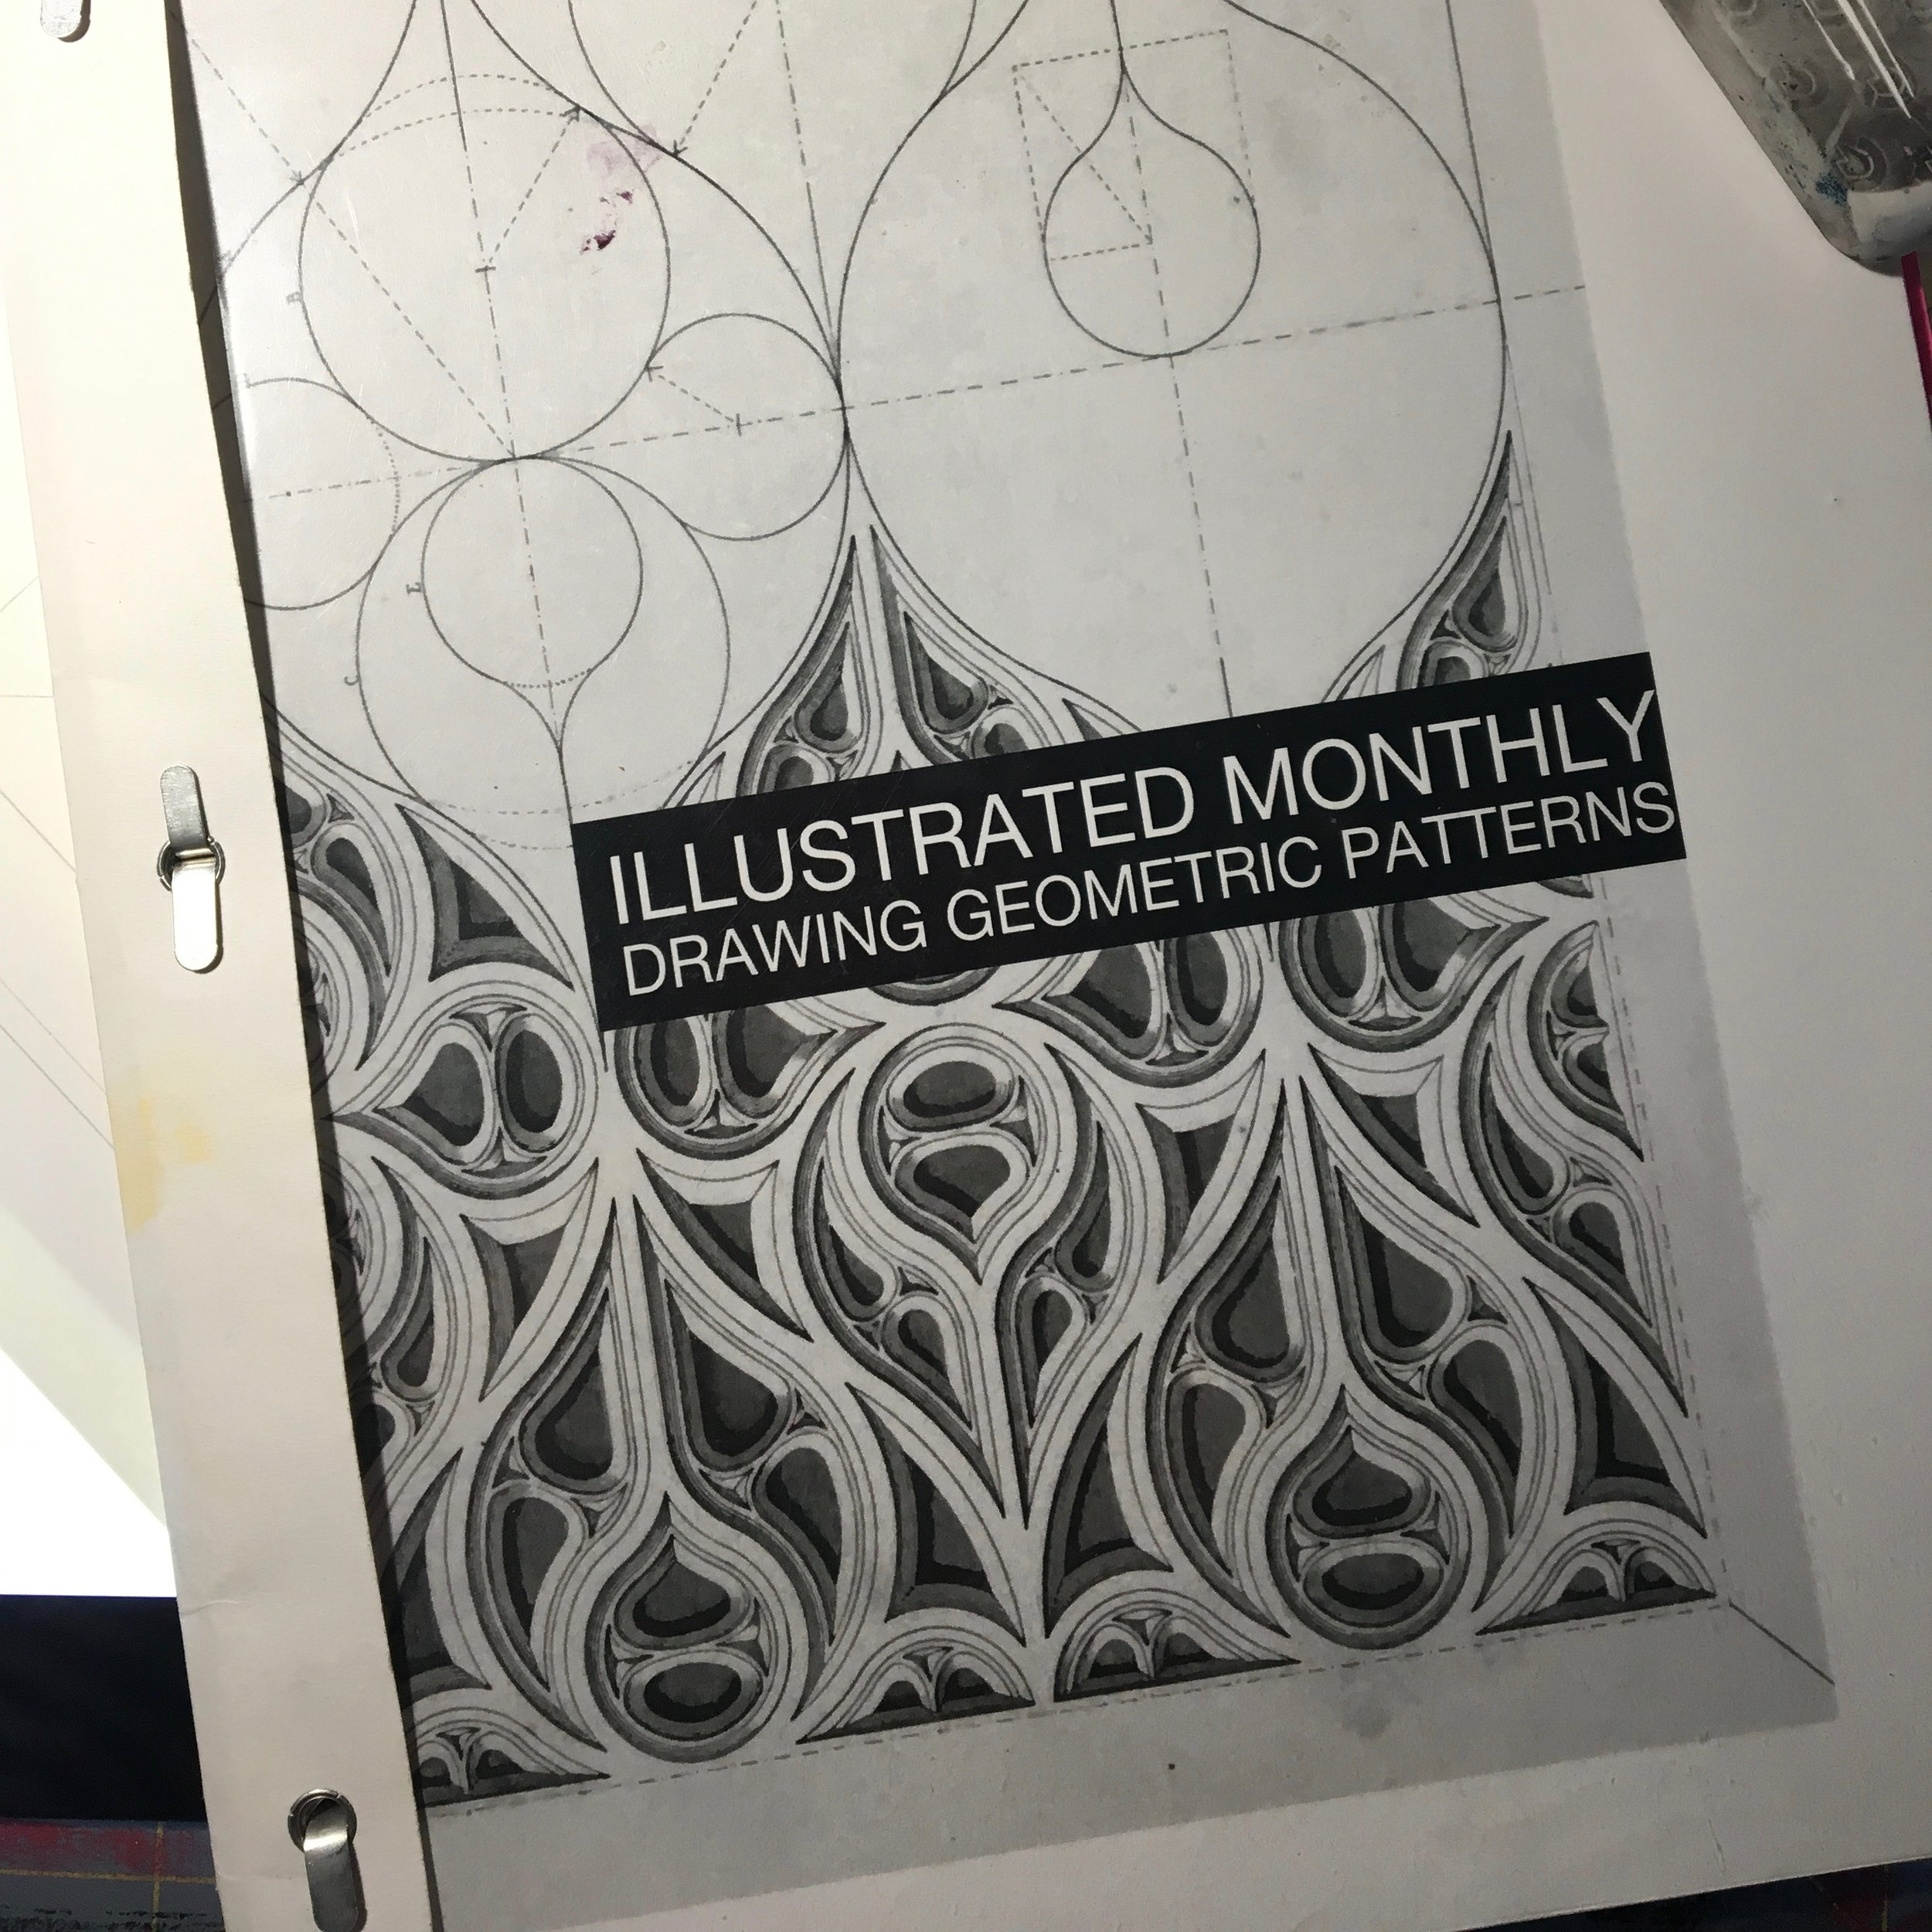 illustrated monthly drawing geometric patterns